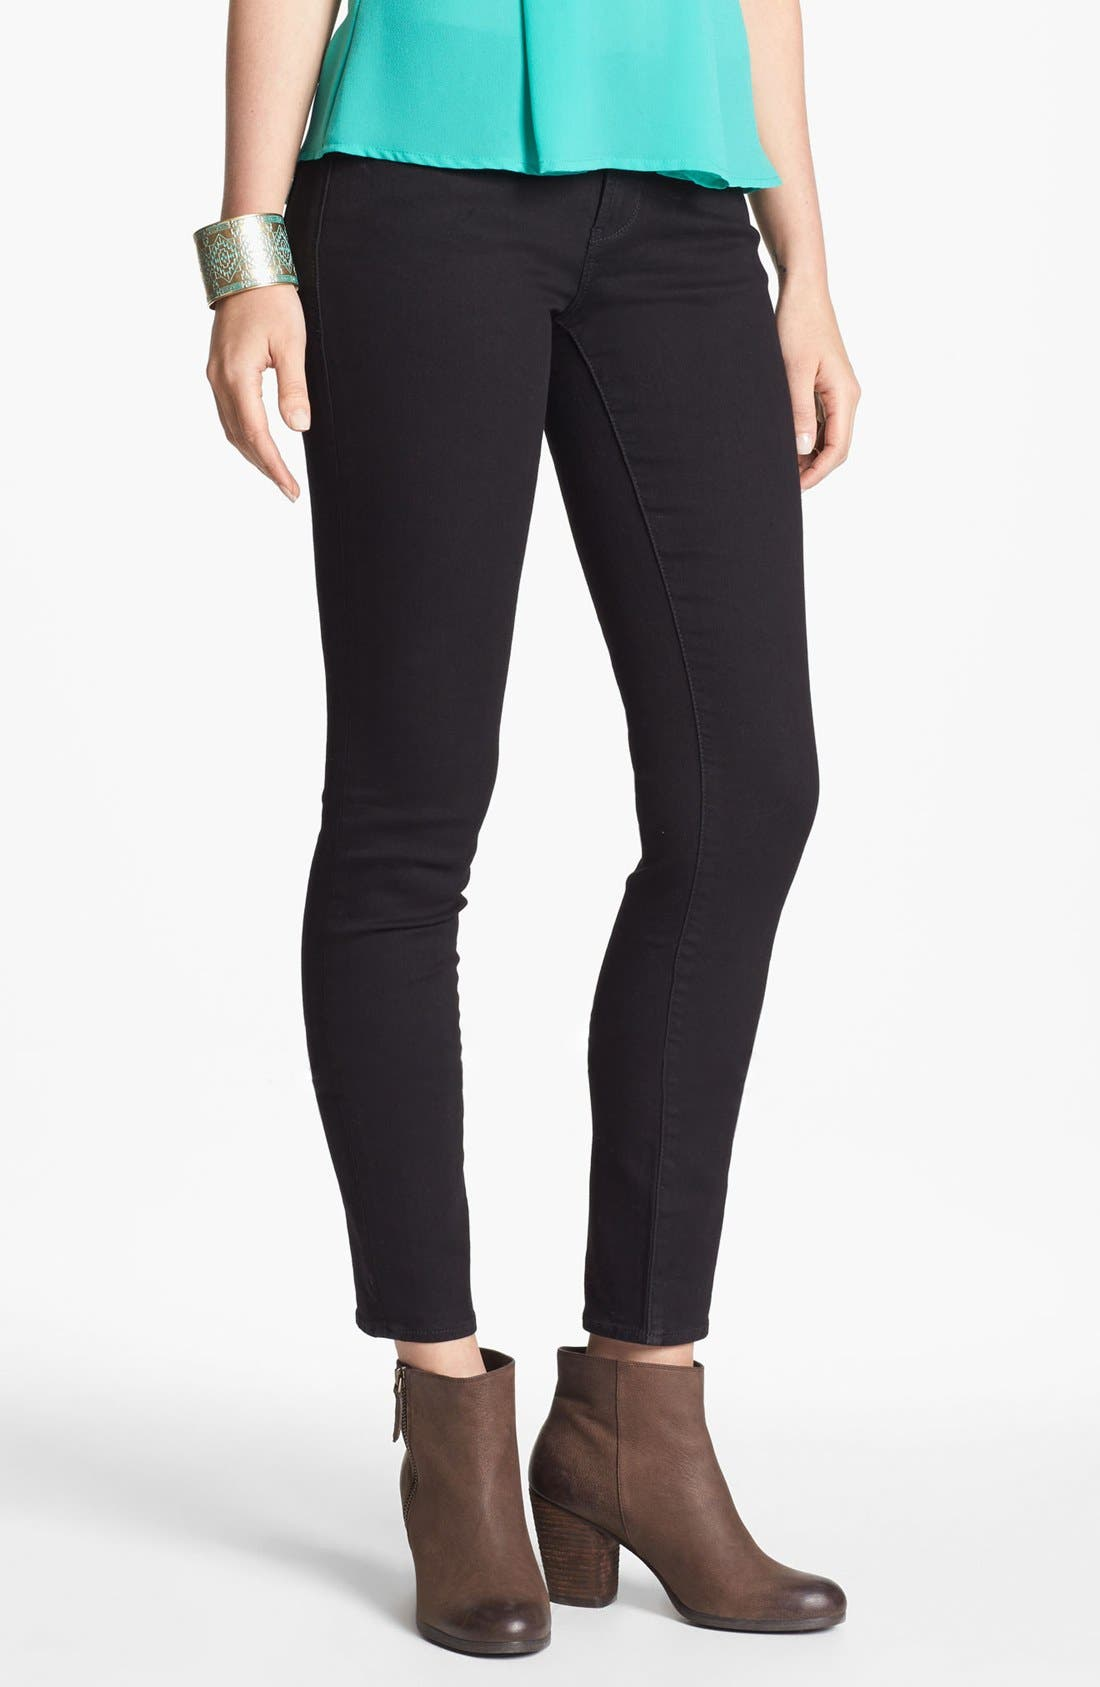 Alternate Image 1 Selected - Articles of Society 'Mya' Skinny Ankle Jeans (Black) (Juniors)(Online Only)